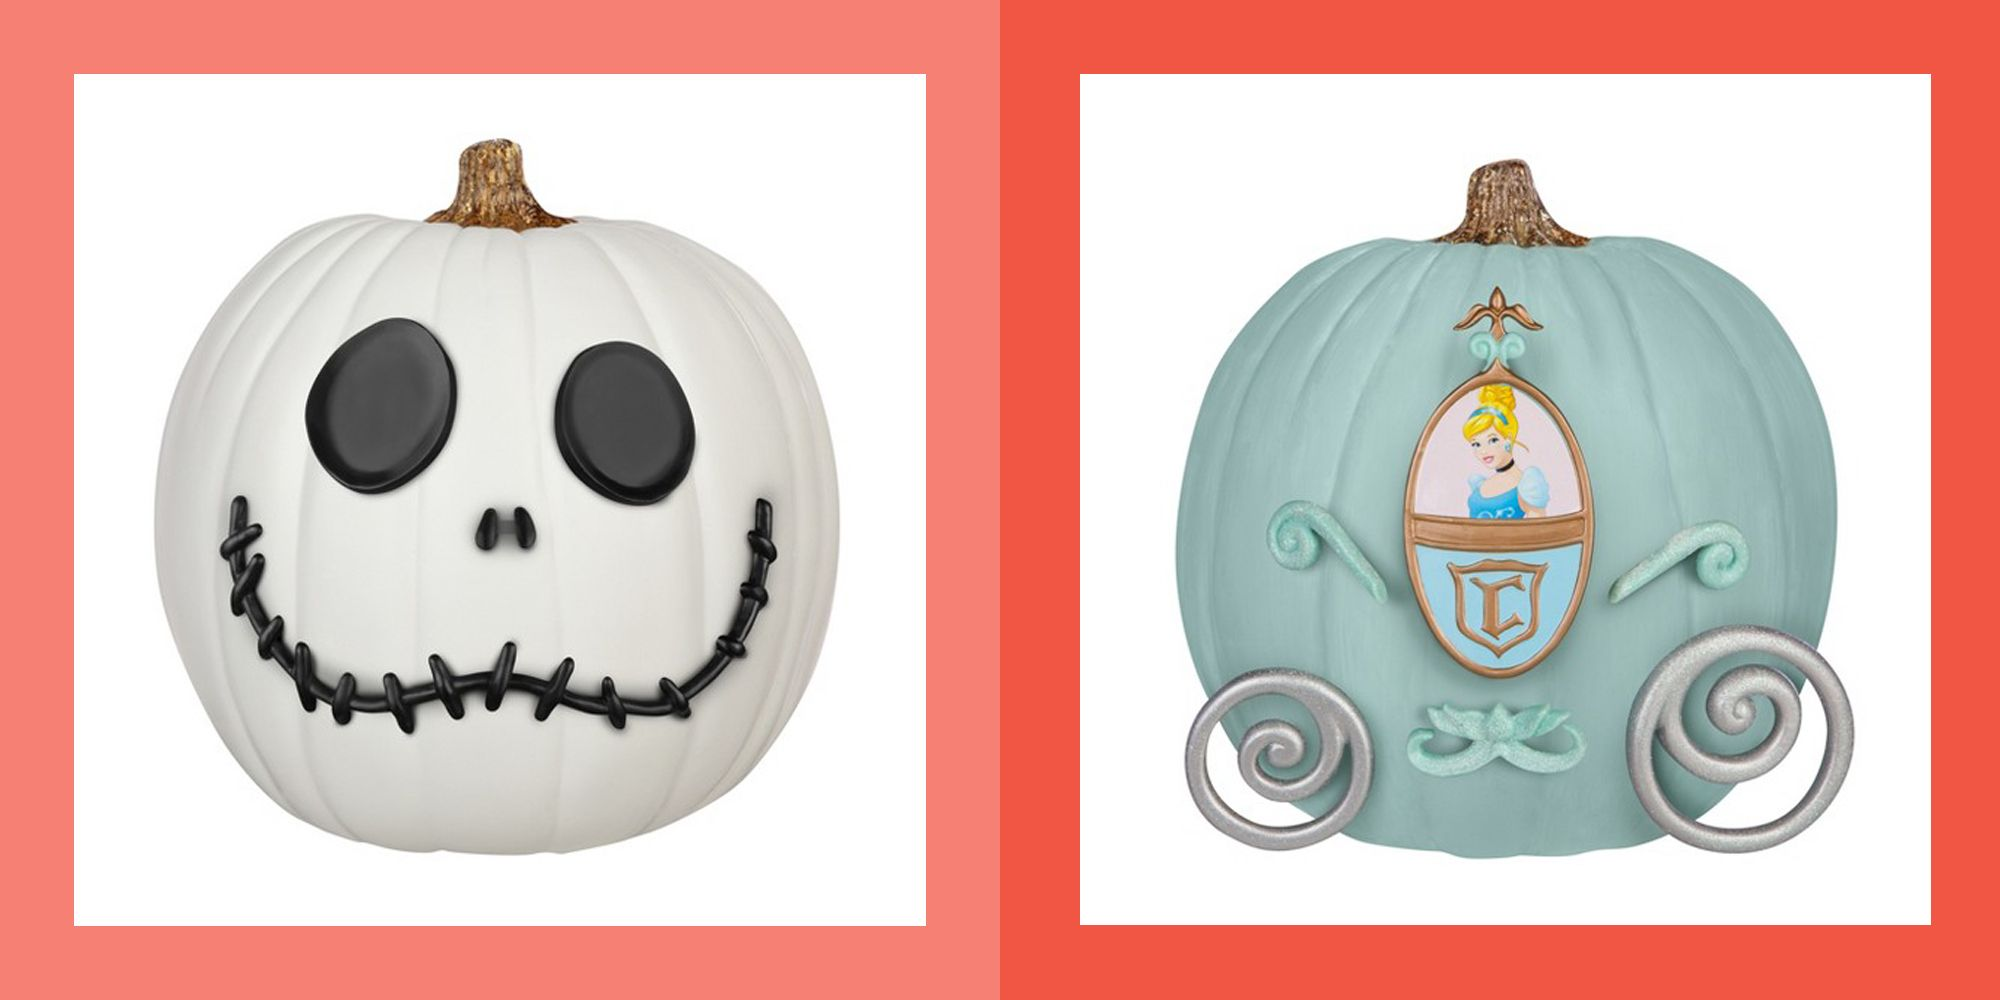 Target Is Selling Disney-Inspired No-Carve Pumpkins, and They'll Make Halloween Less Messy